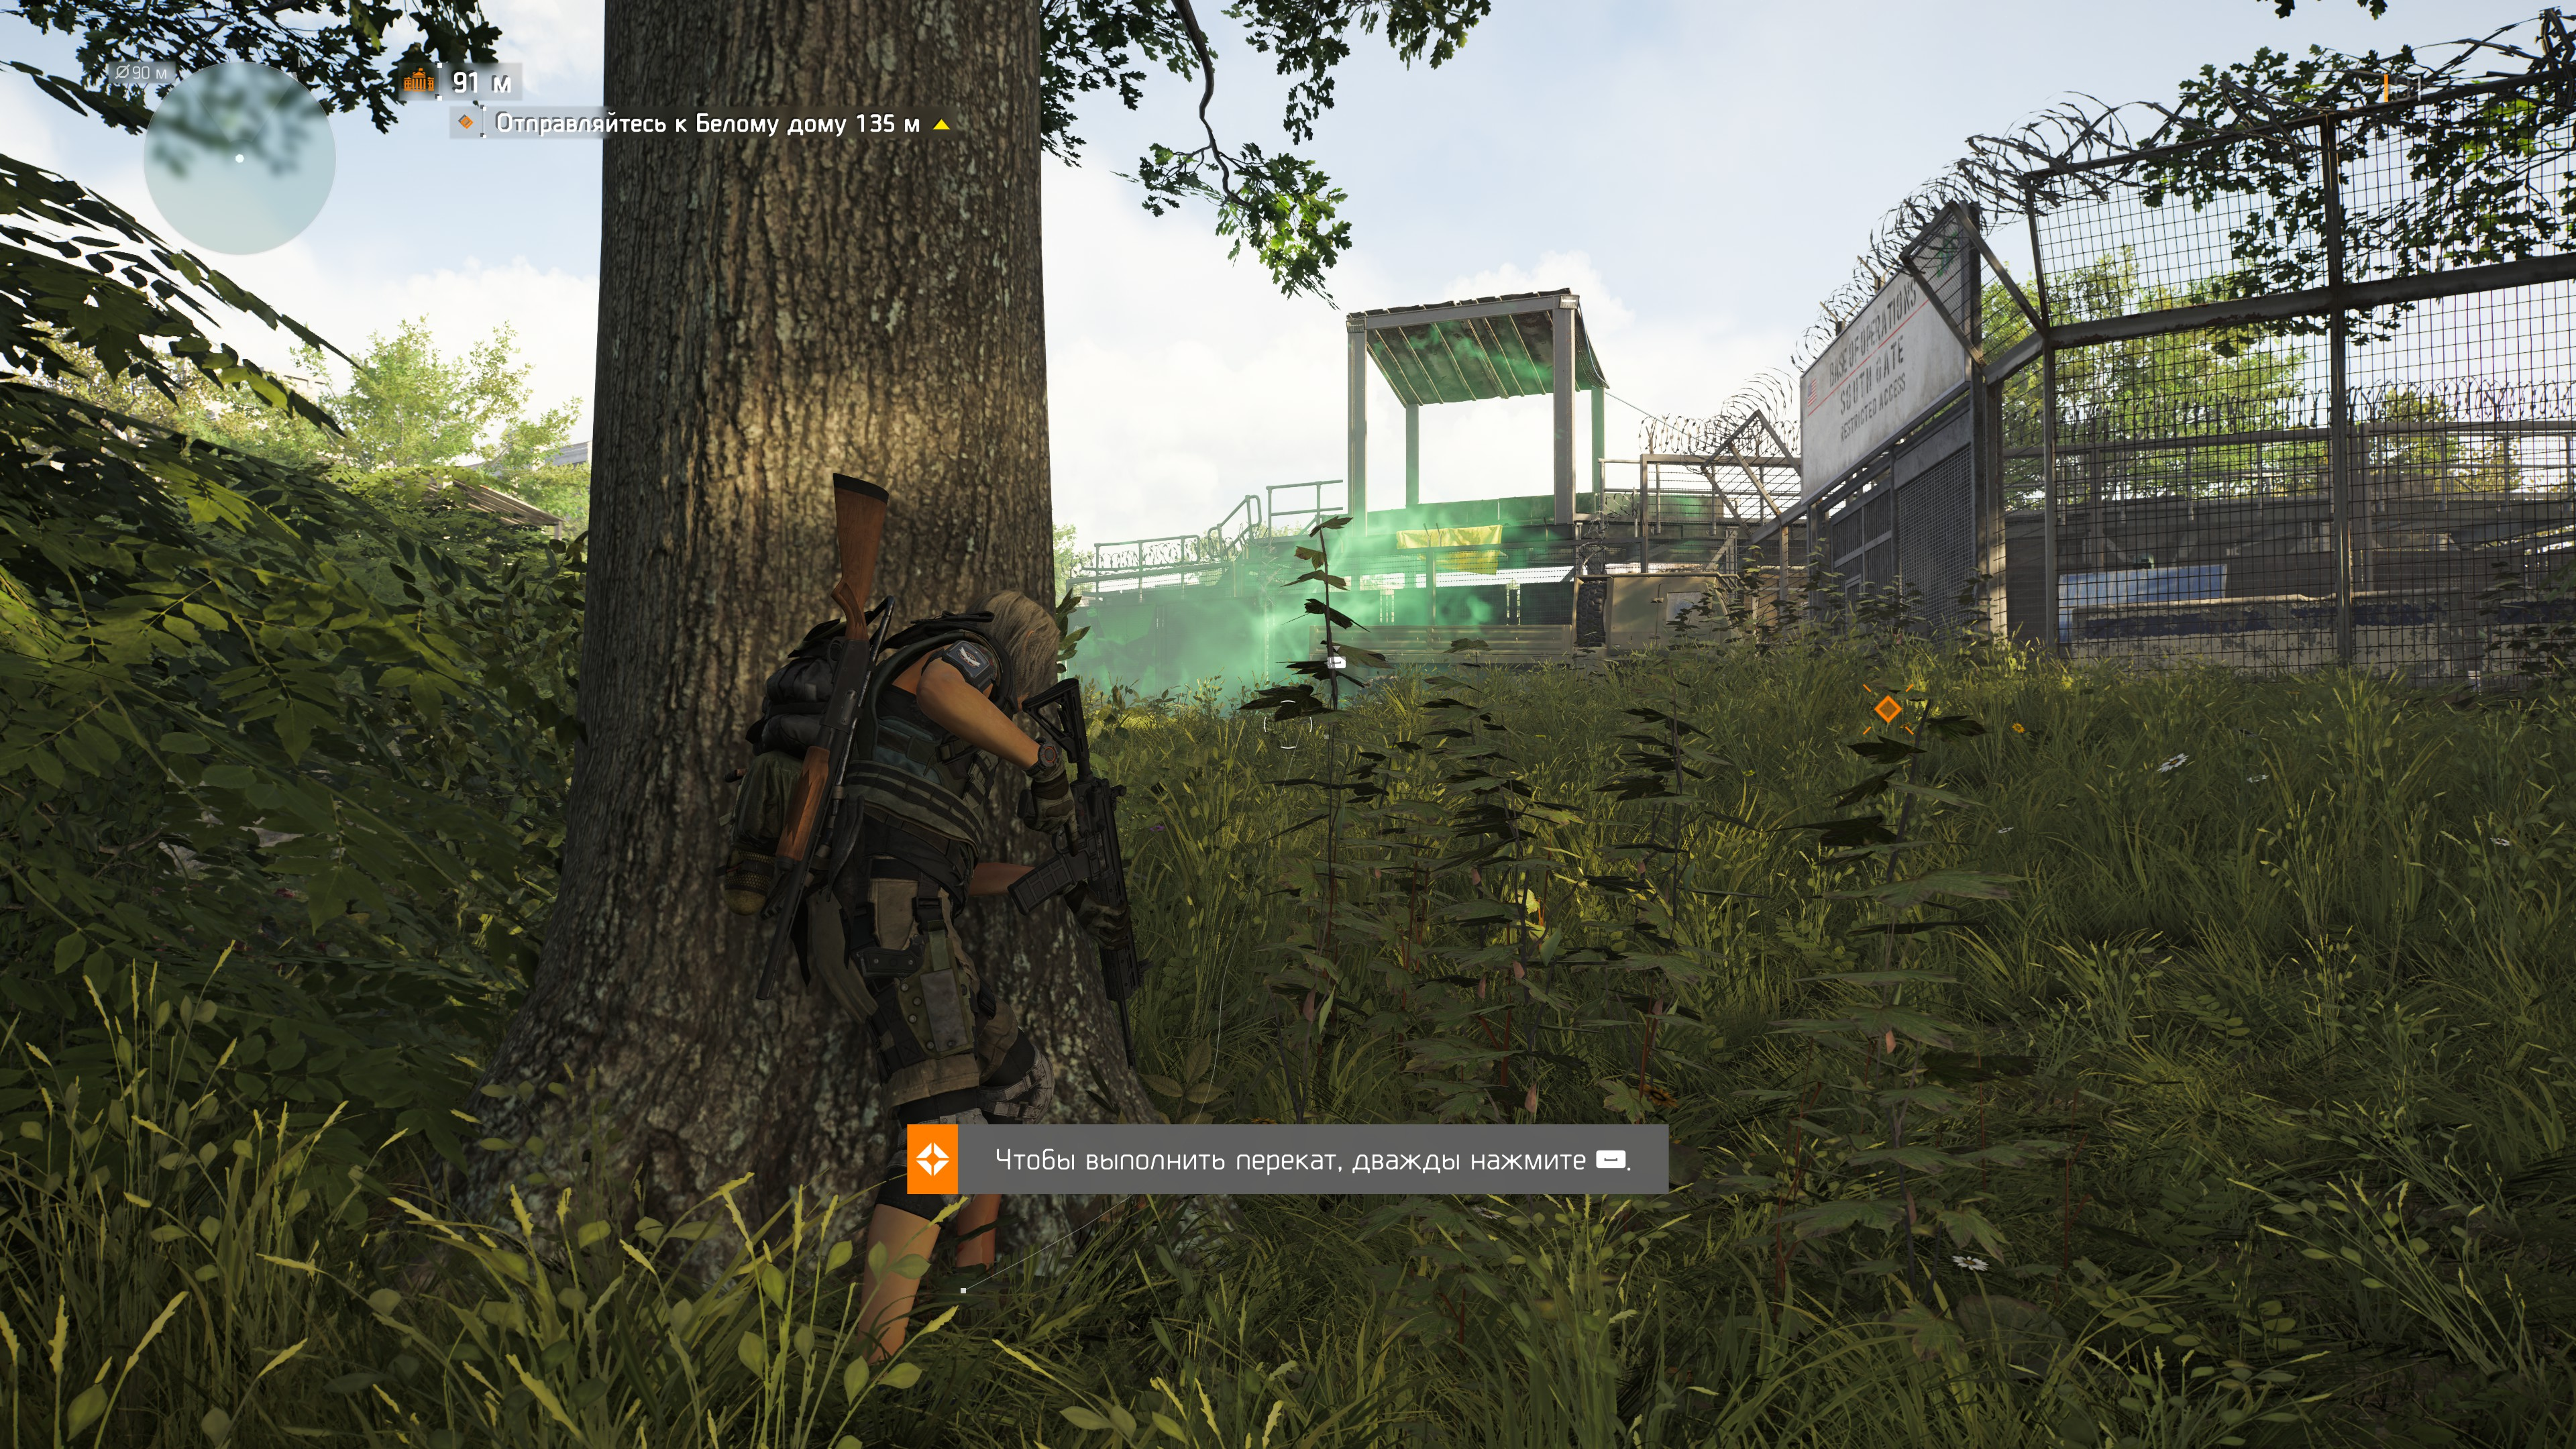 Tom Clancy's The Division® 22020-3-1-5-48-42.jpg - Tom Clancy's The Division 2